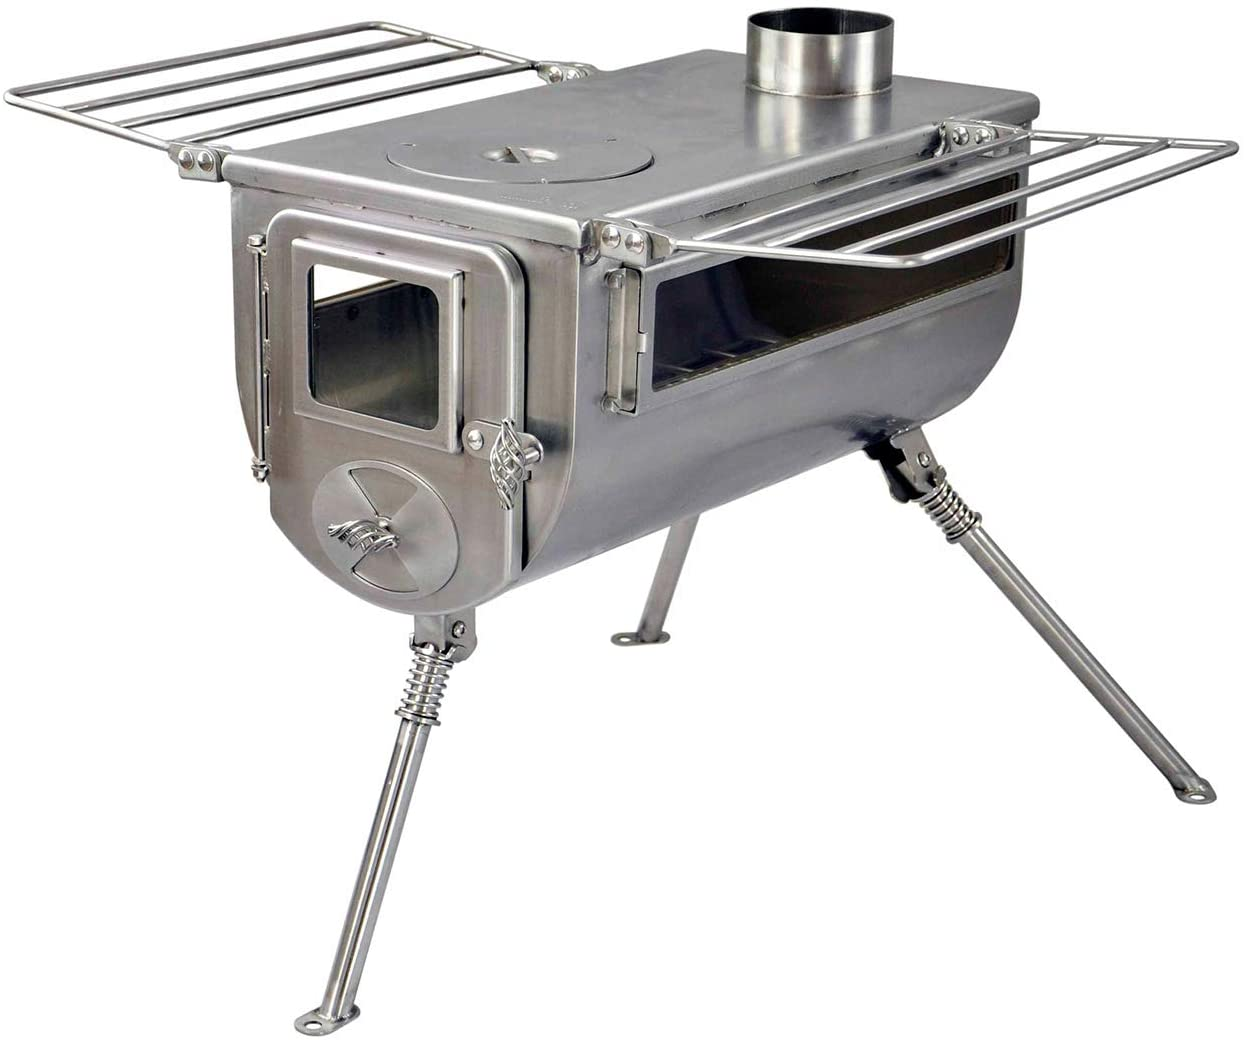 The Best Wood Burning Tent Stoves for Winter Camping